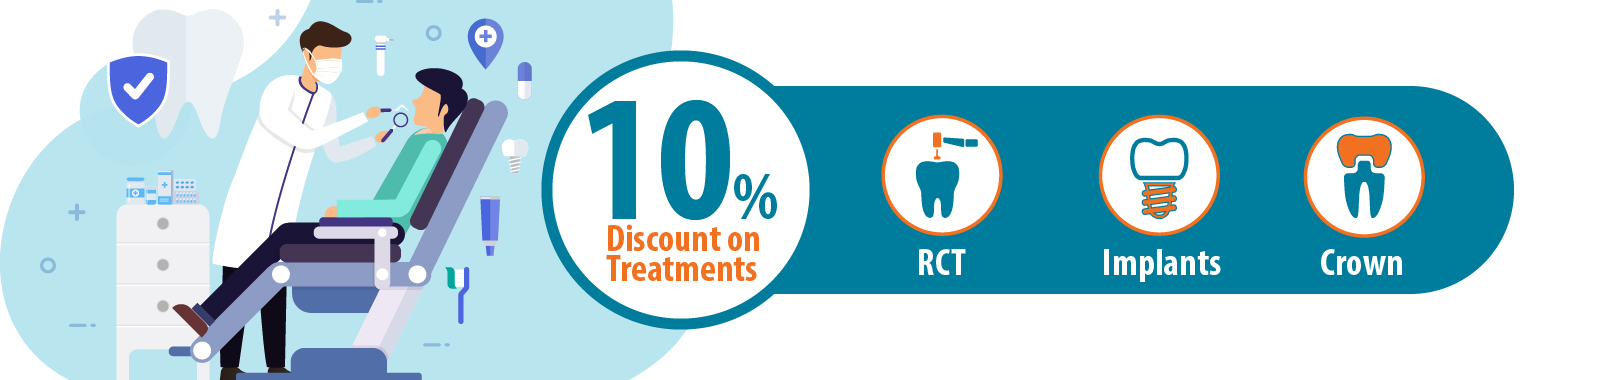 Dental-Web-banner-1